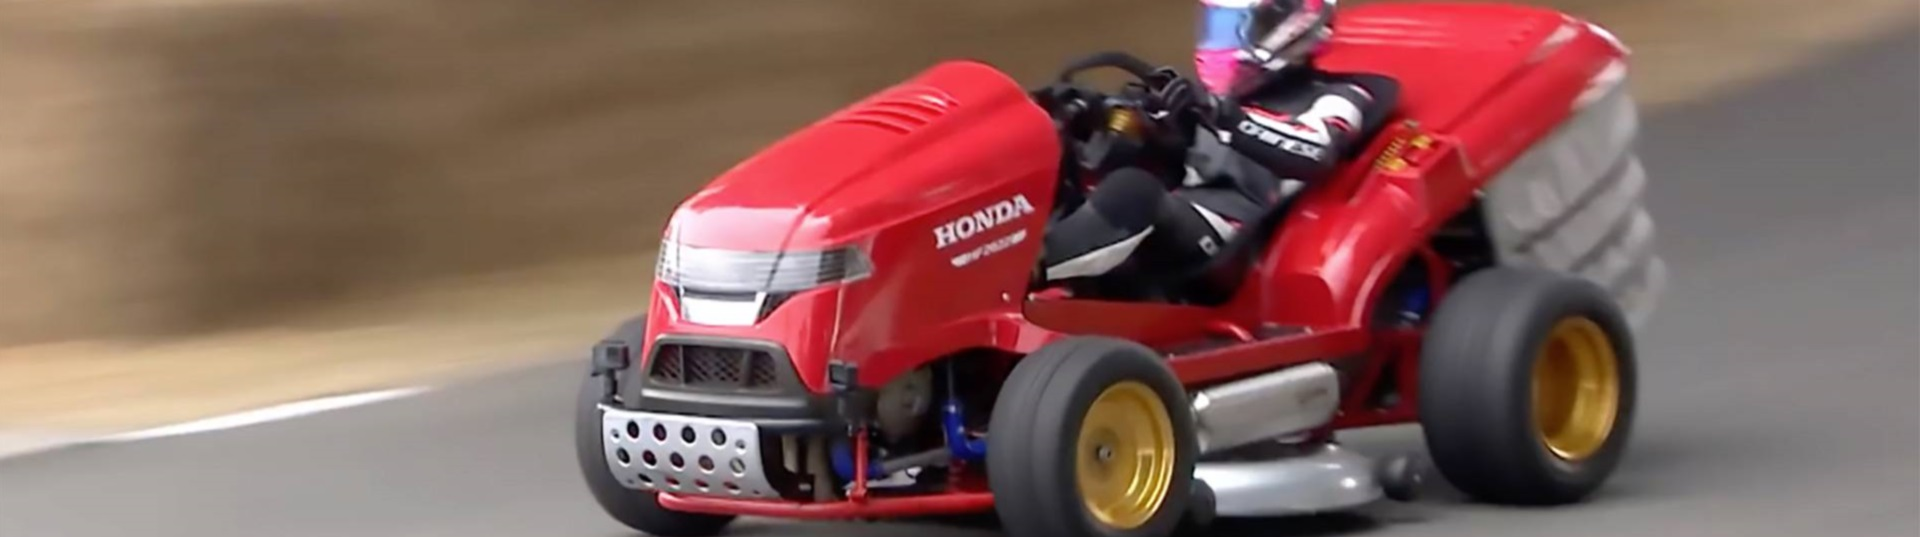 honda mean_mower_1920